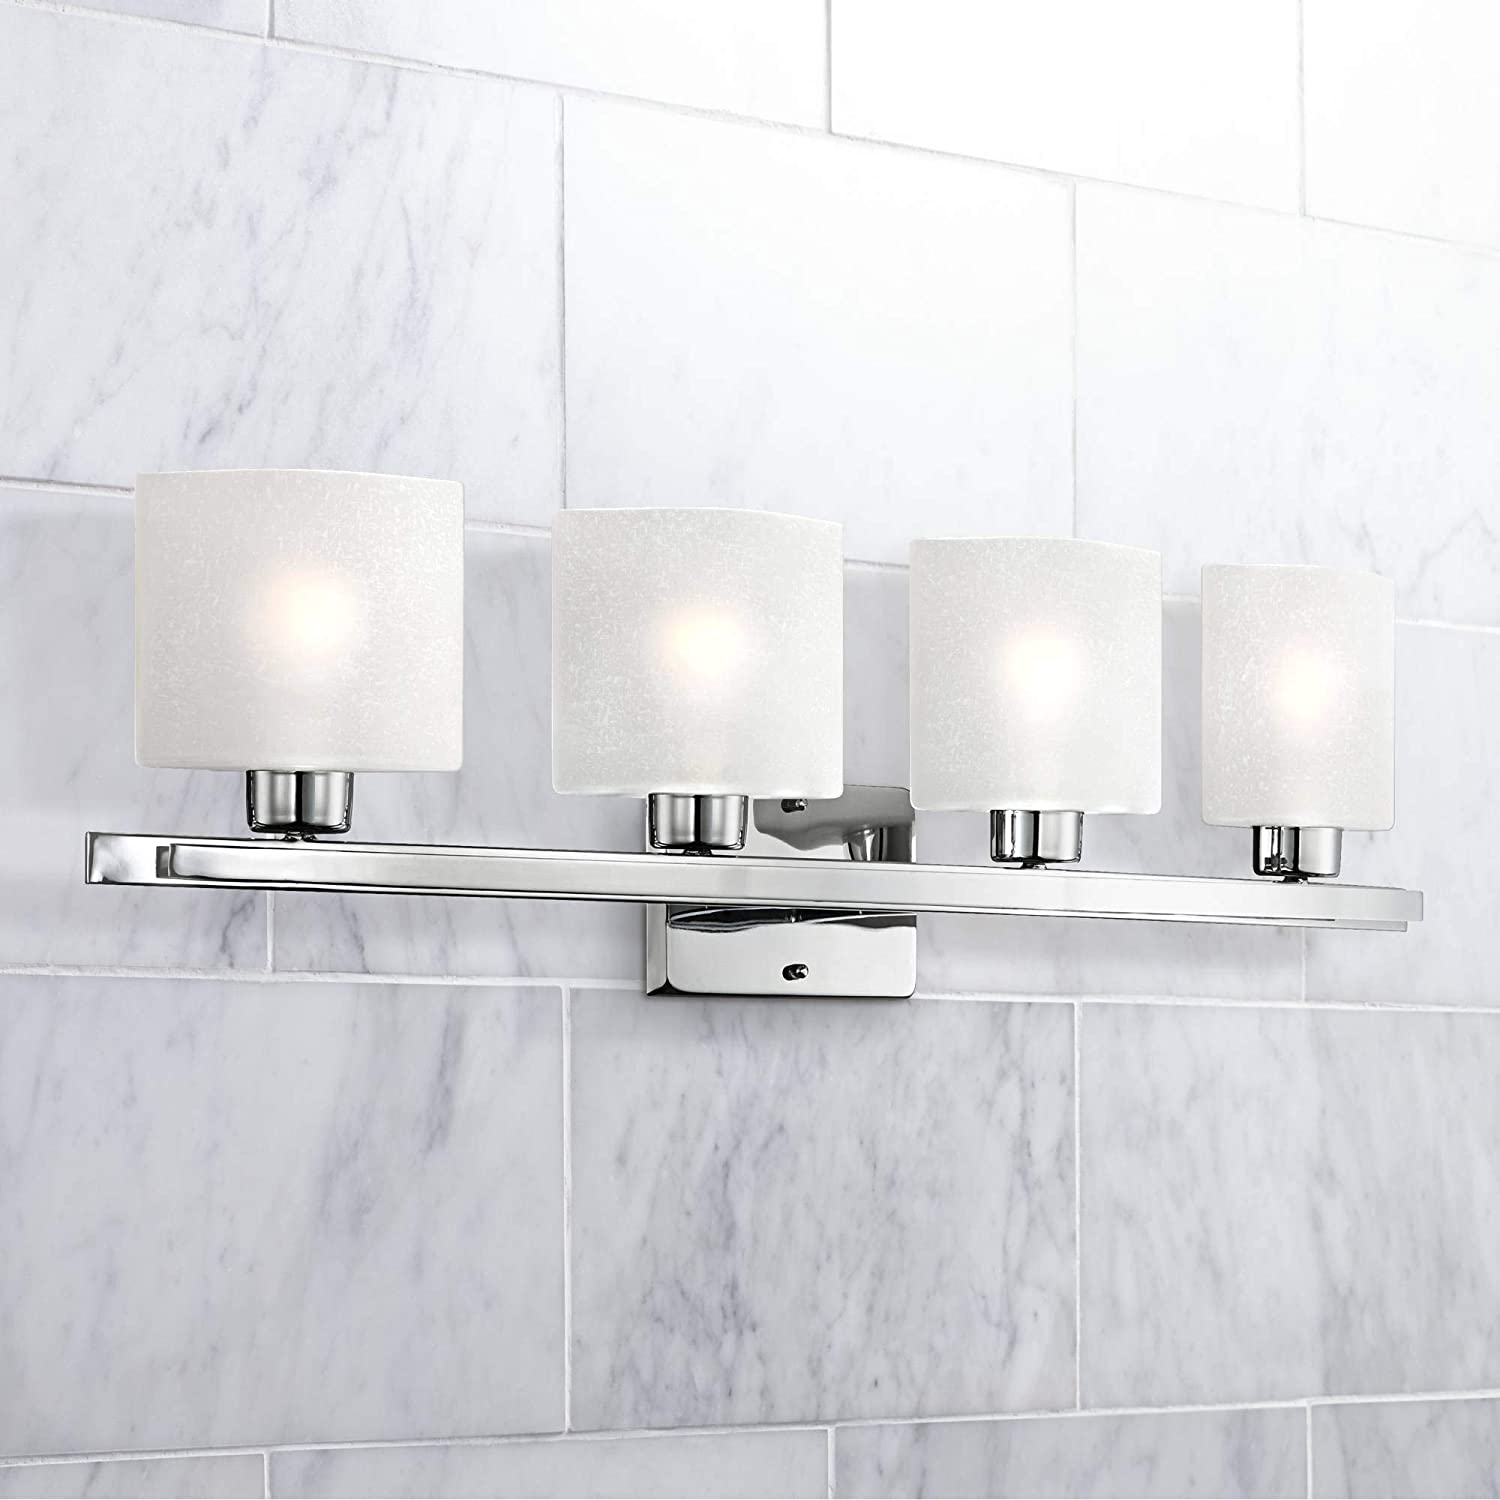 Modern Wall Light Chrome Hardwired 32 Wide 4-Light Fixture White Linen Glass Shades for Bathroom Vanity – Possini Euro Design